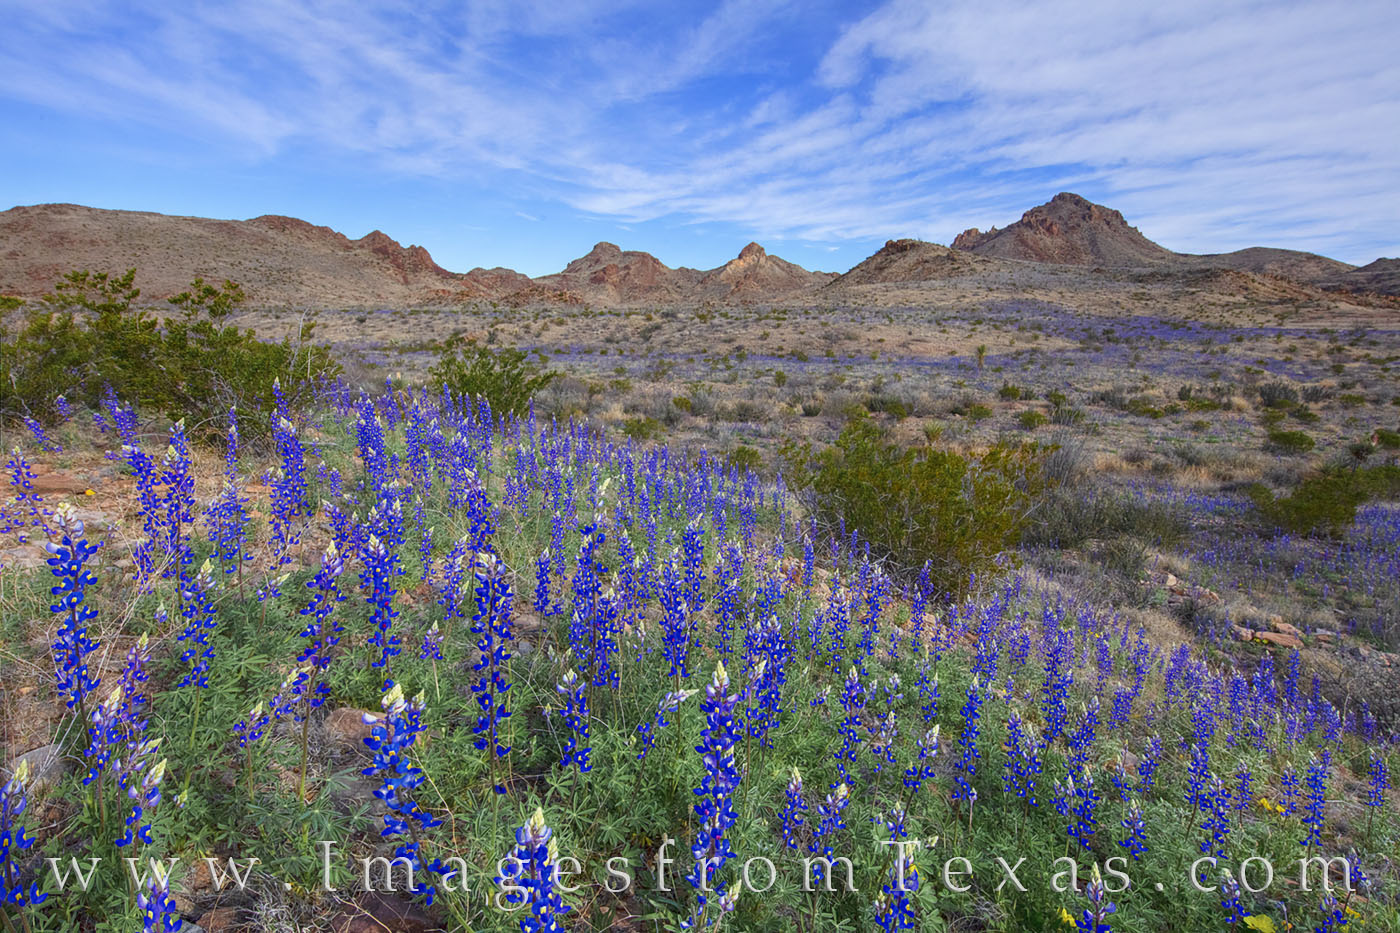 bluebonnets, big bend, national park, chisos mountains, desert, chihuahuan desert, west texas, spring, february, bloom, wildflowers, texas state flower, photo